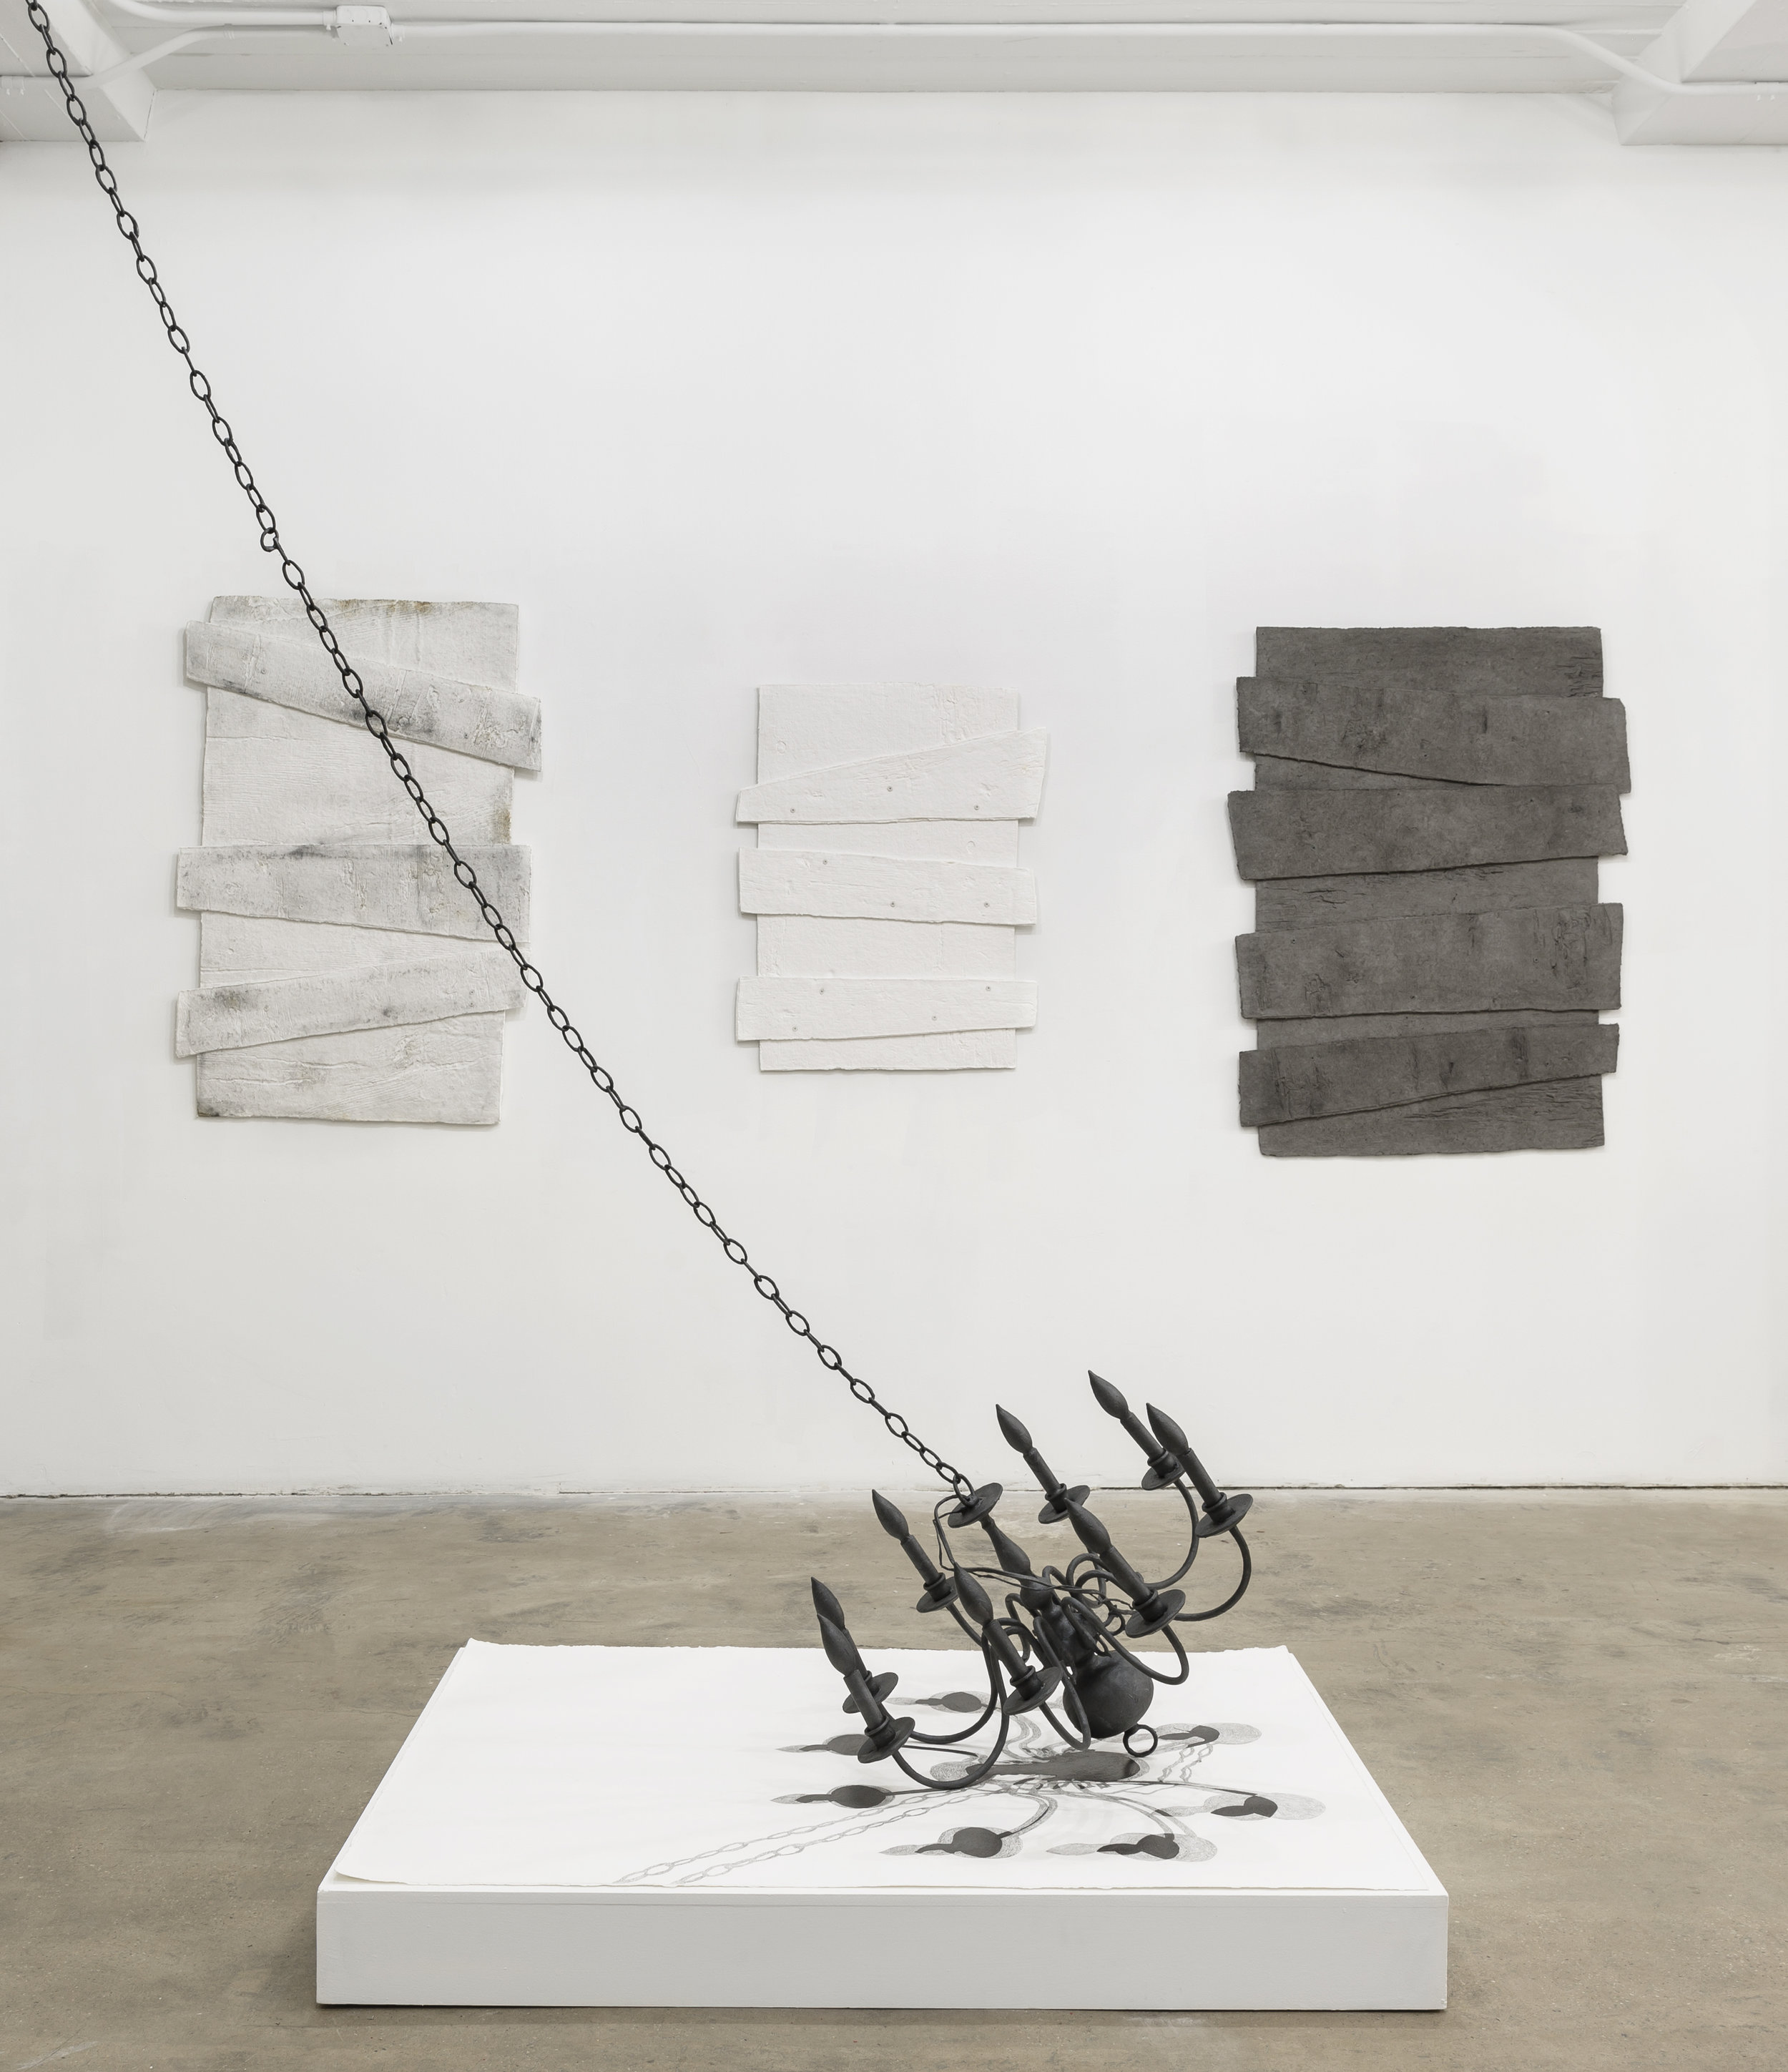 Diana Shpungin installation view. Image copyright and courtesy of Etienne Frossard.